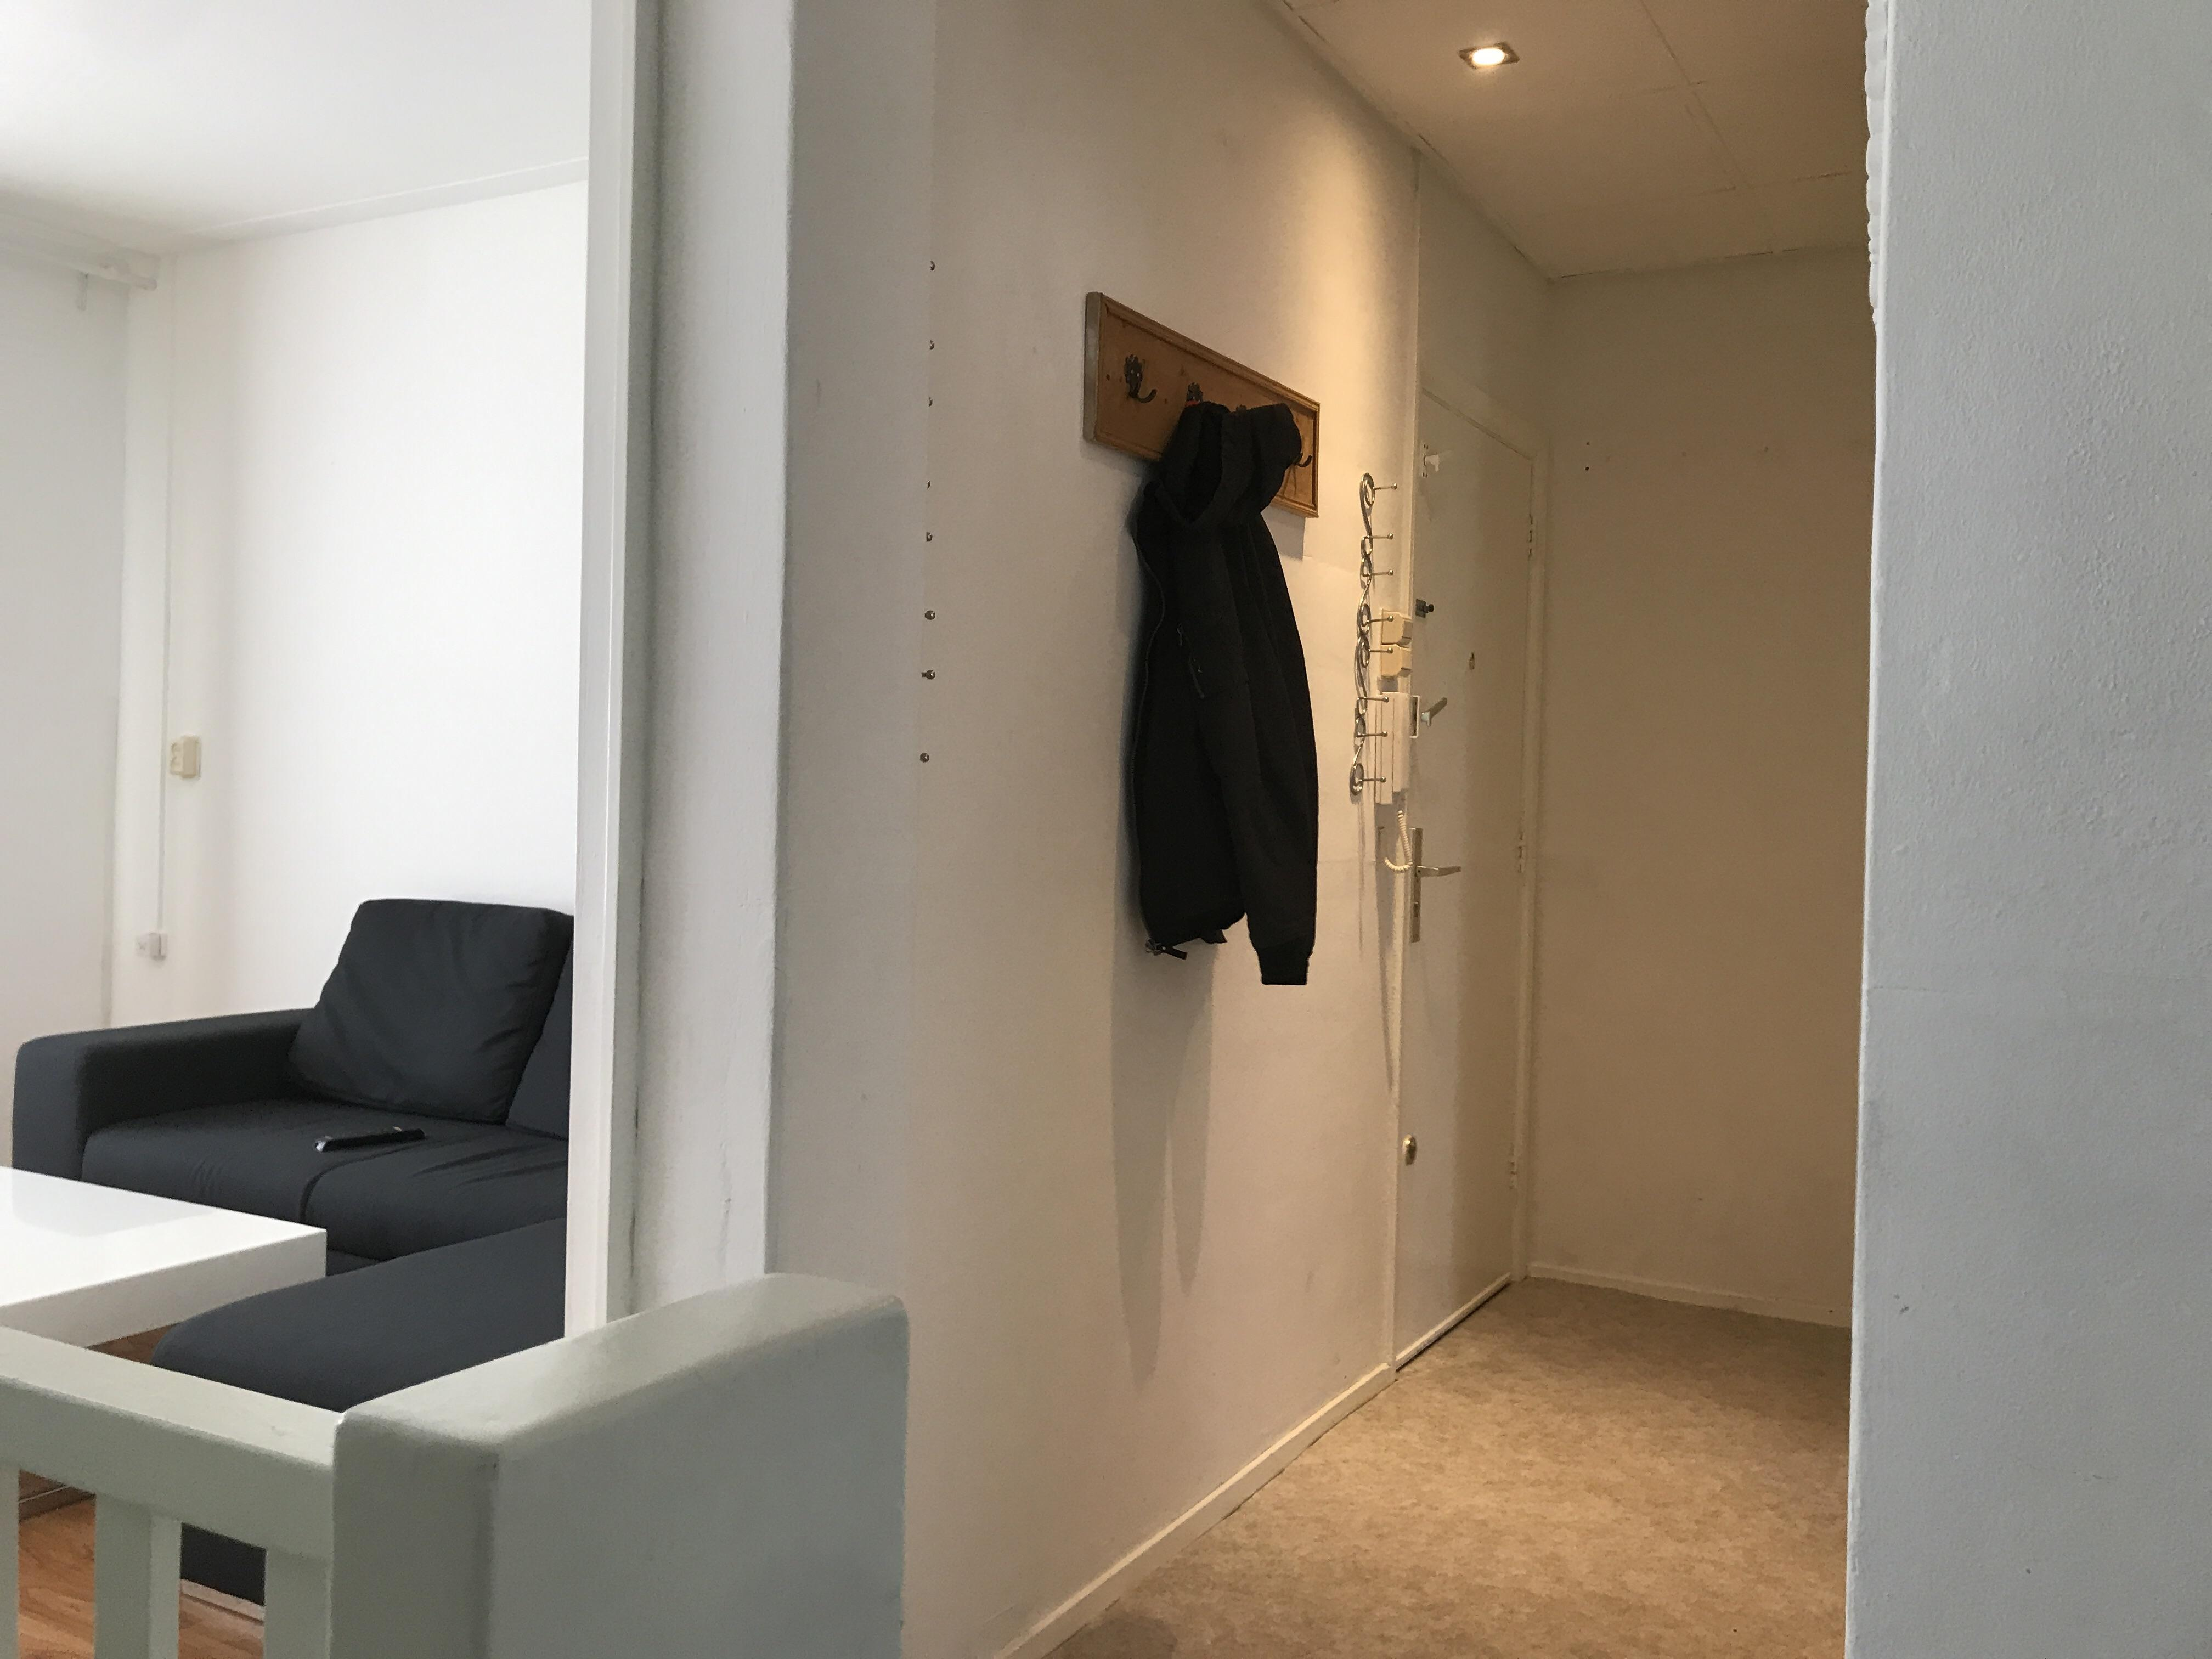 Apartment Danis place Close to Station Vlugtlaan photo 2882049